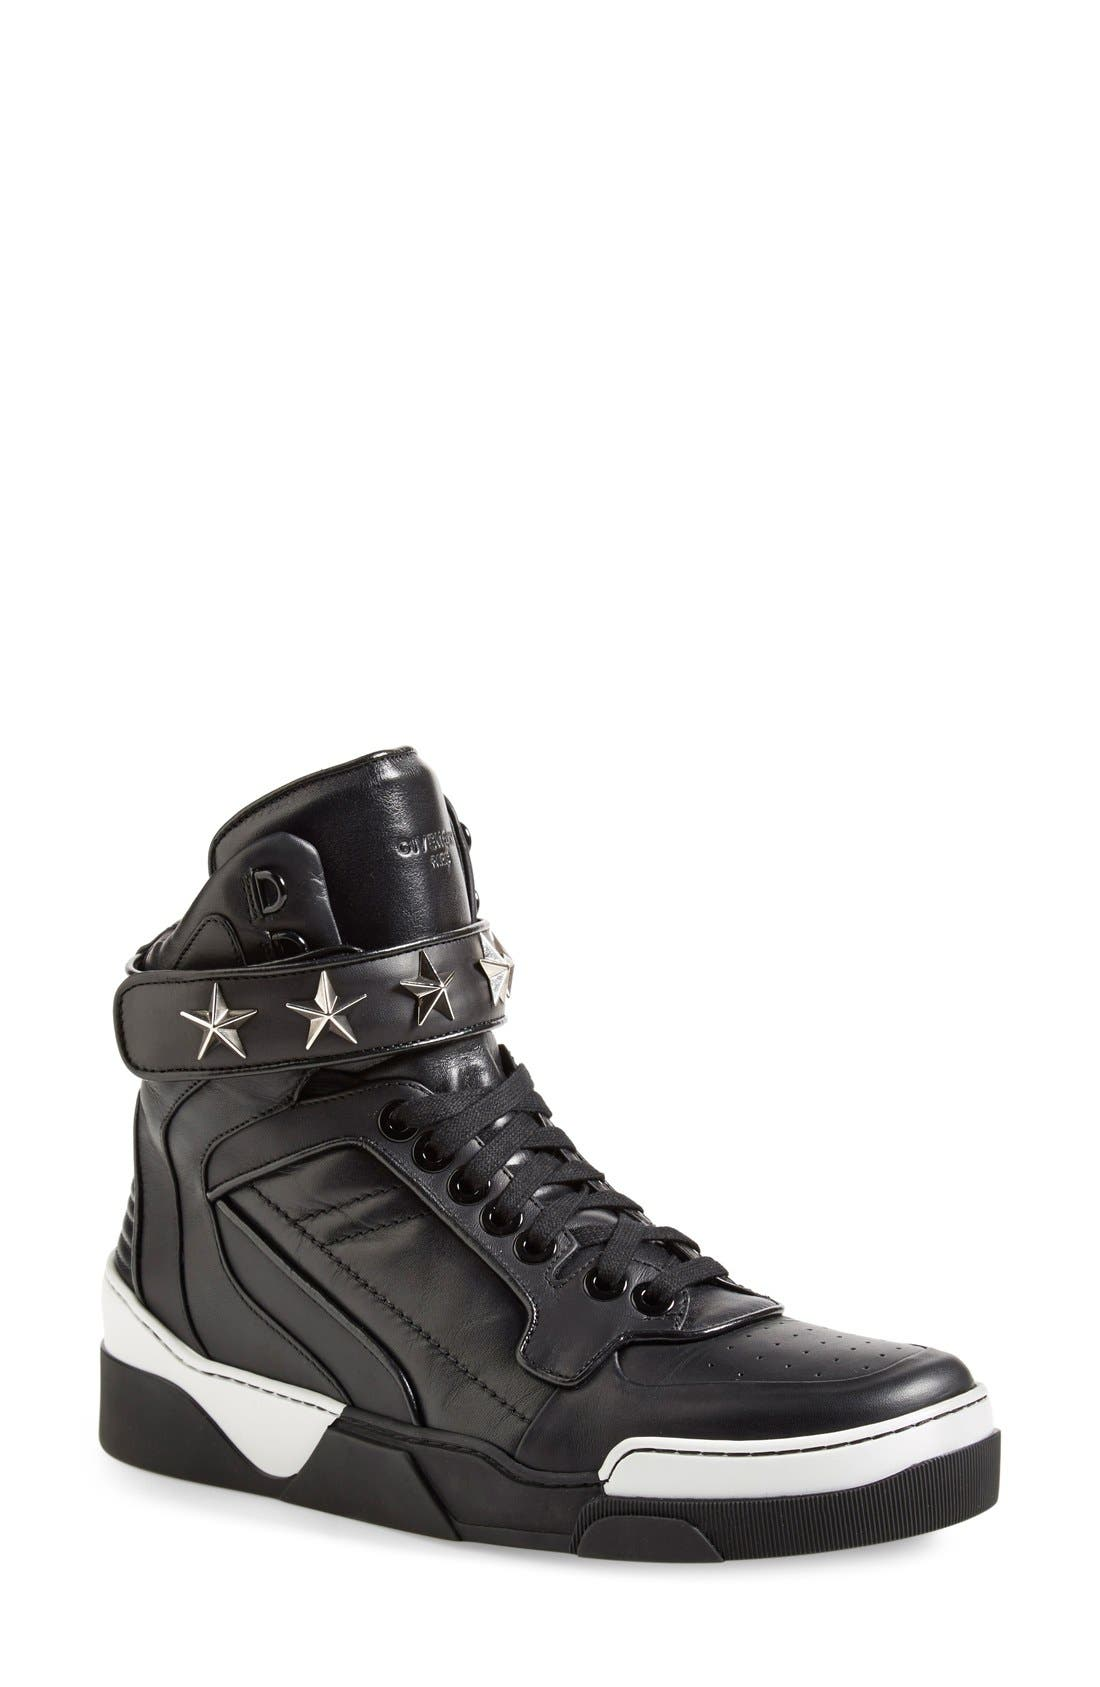 'Tyson' High Top Sneaker,                         Main,                         color,